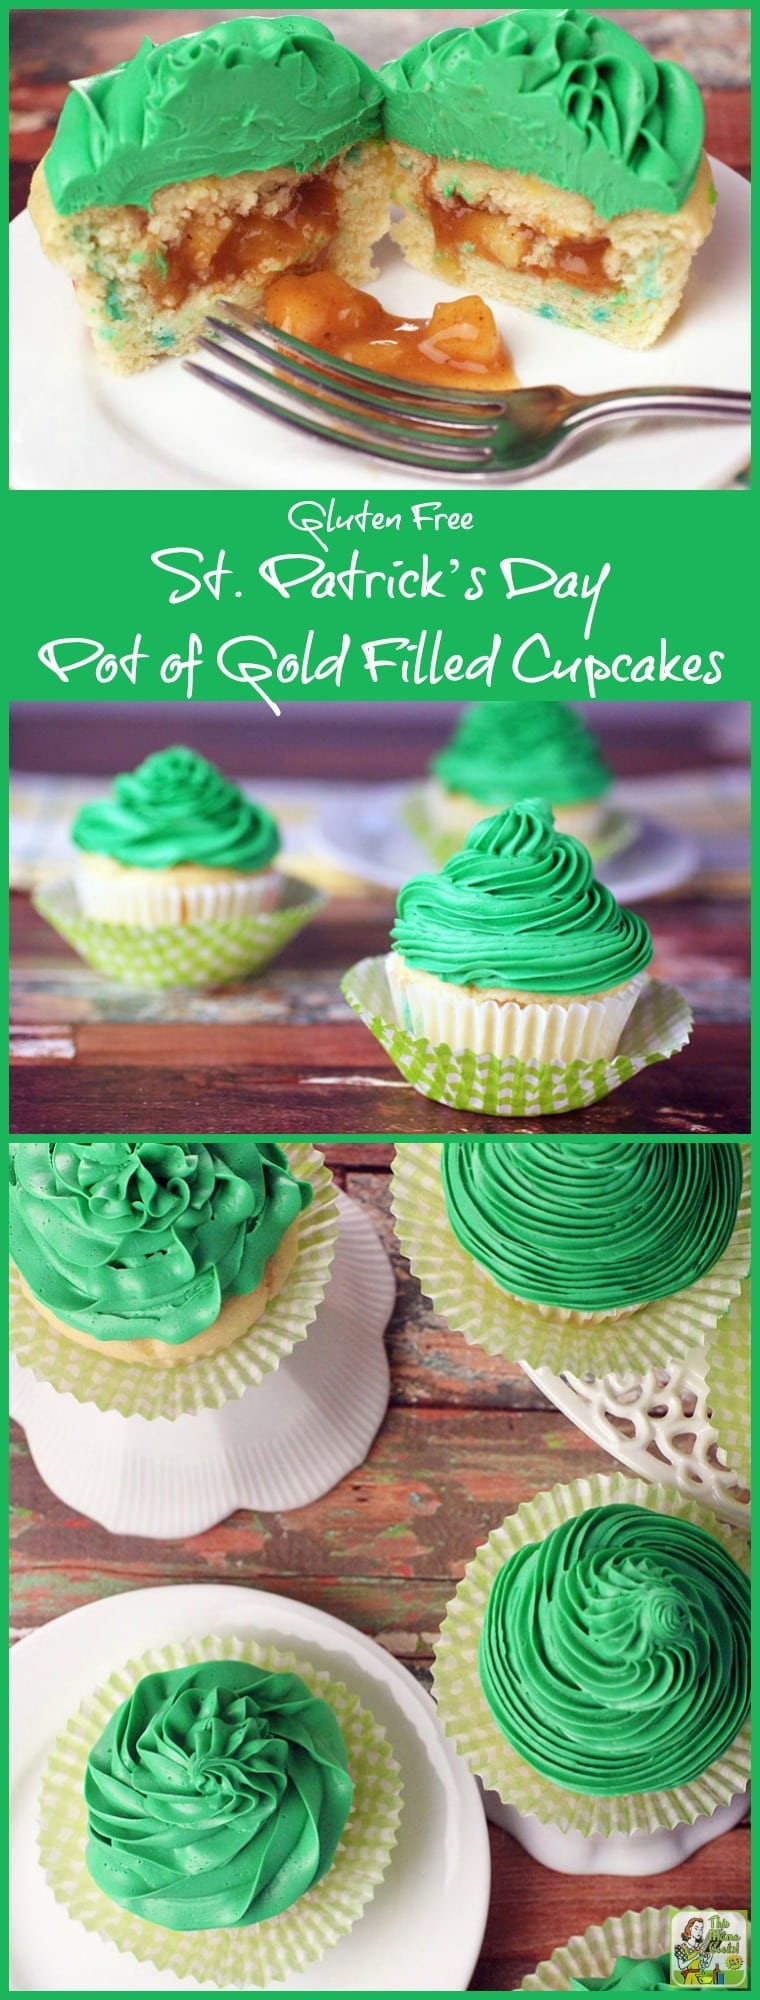 Making this Gluten Free St. Patrick's Day Pot of Gold Filled Cupcakes recipe is easier than you think. This gluten free cupcake recipe uses box mix and gluten free frosting from the store. The apple pie filling can be made on your stovetop in less than 30 minutes. Use this cupcake filing technique for other holidays besides St. Patrick's Day when you need a fun gluten free dessert!